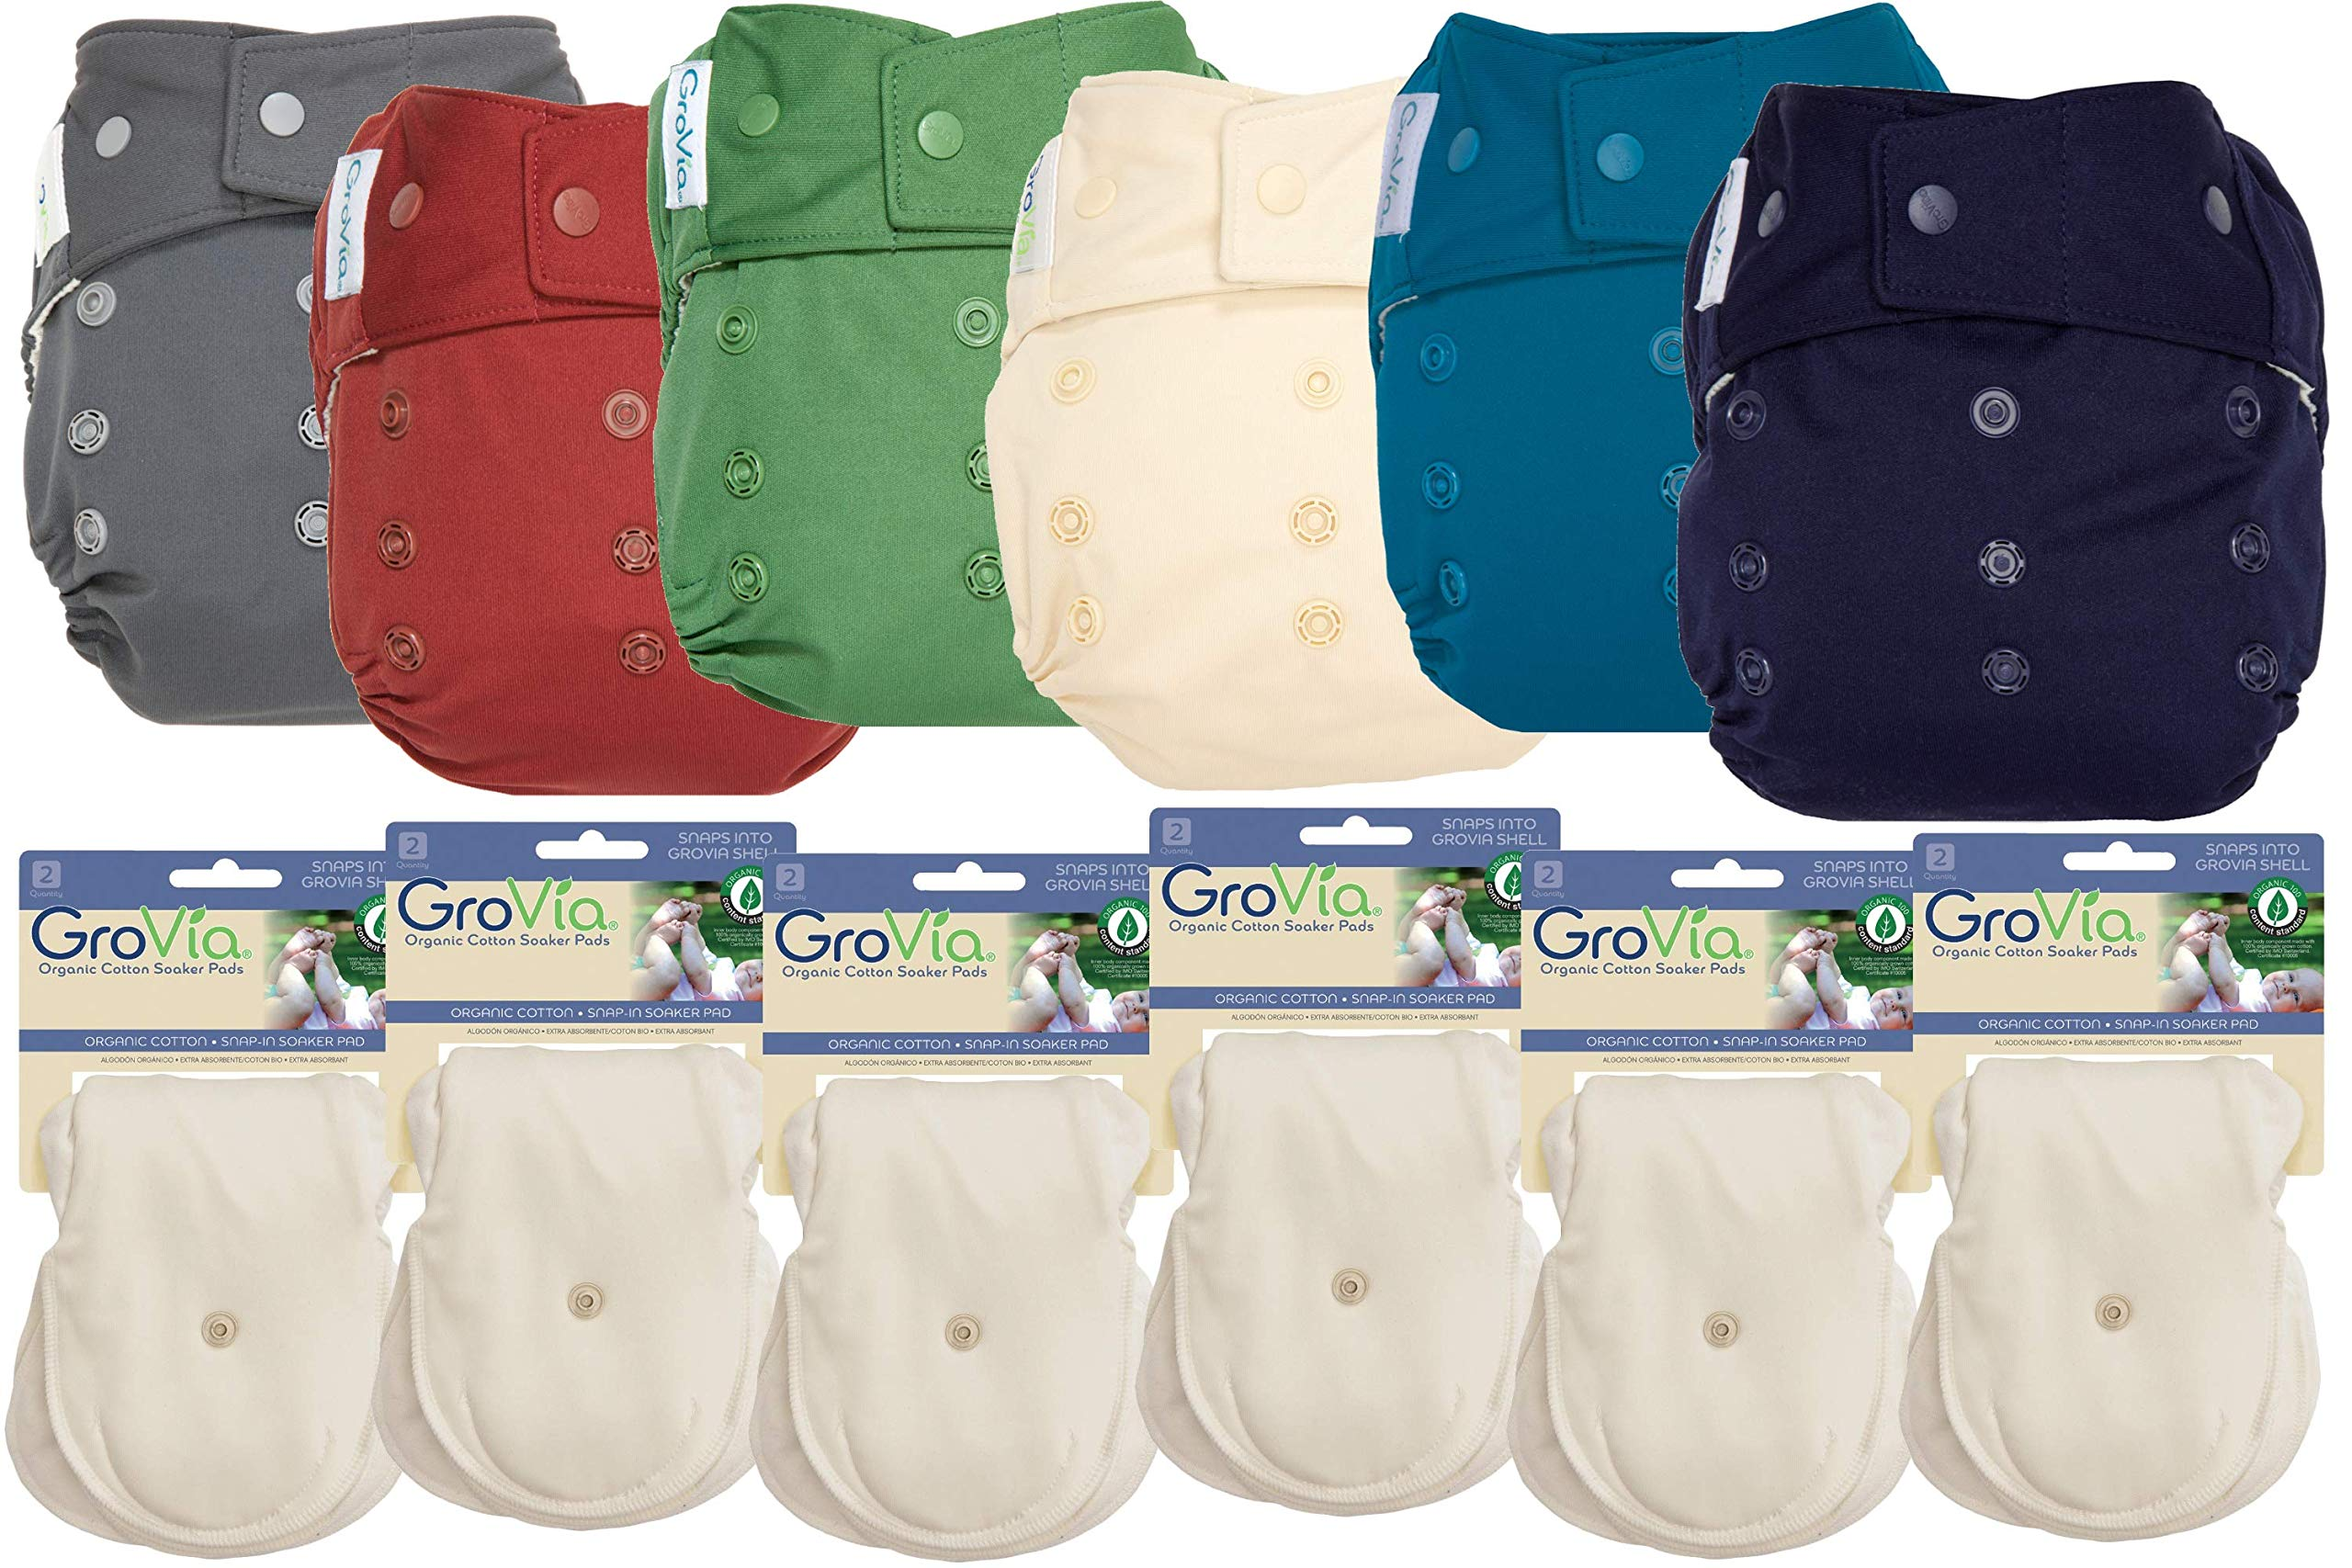 GroVia Hybrid Part Time Package: 6 Shells + 12 Organic Cotton Soaker Pads (Color Mix 7 - Snap)